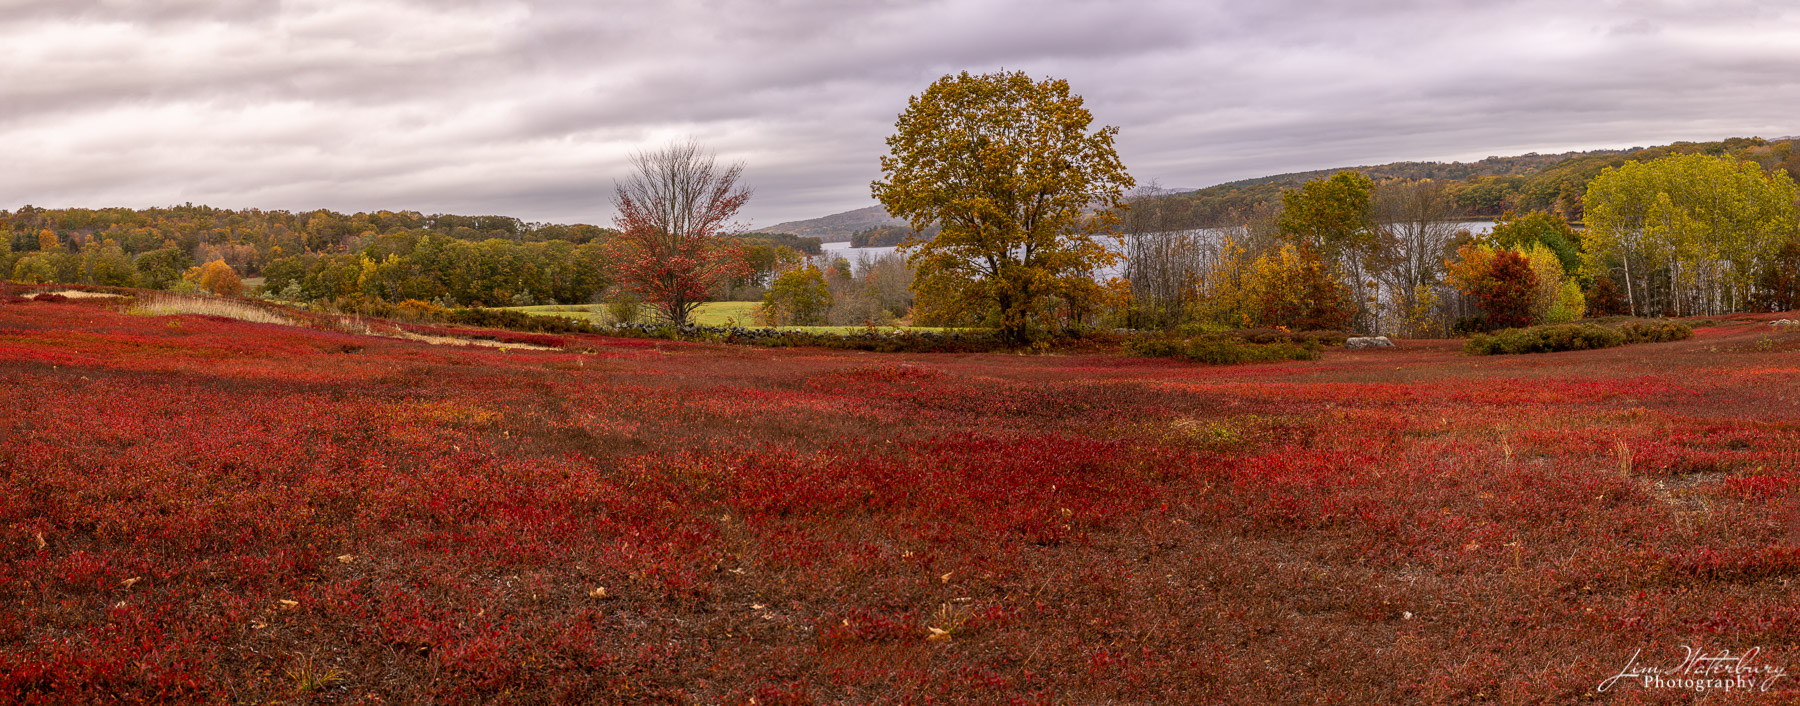 Panoramic image of the Blueberry fields, near Beth's Farm Market, on the road to Union, Maine.